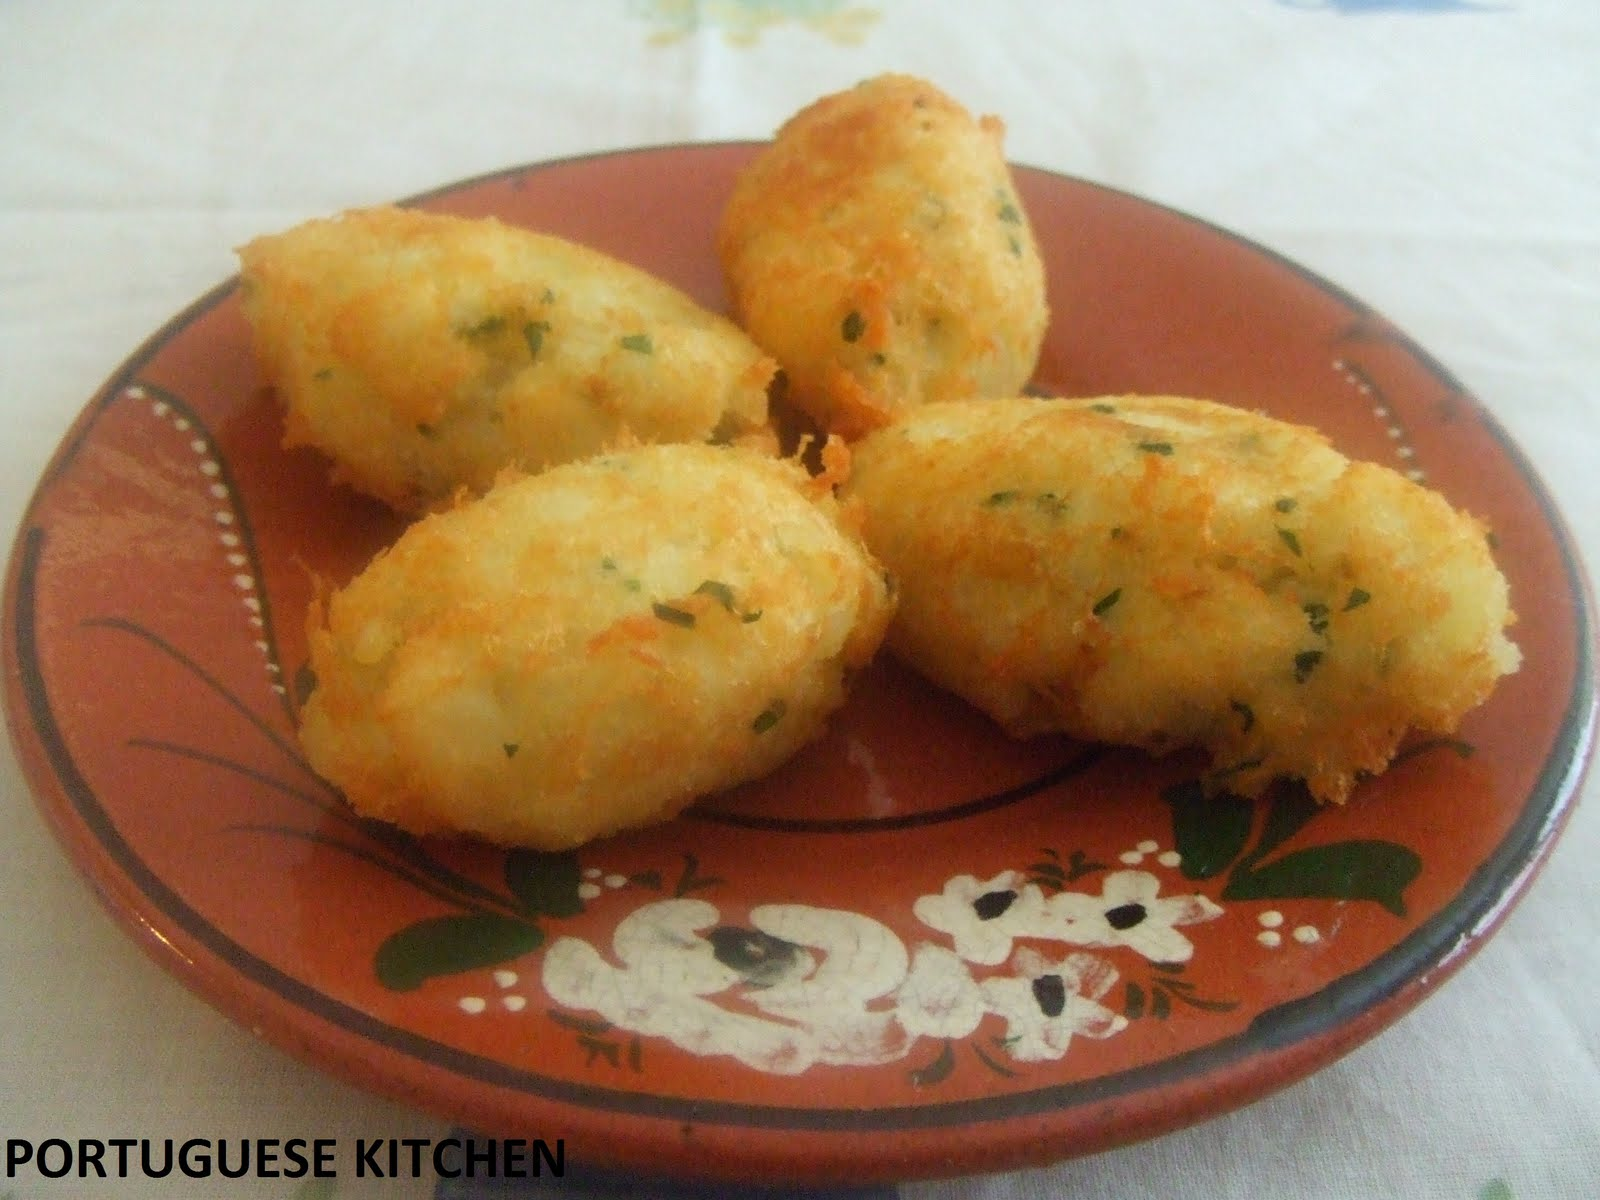 Portuguese kitchen codfish cakes pasteis de bacalhau for How to make cod fish cakes